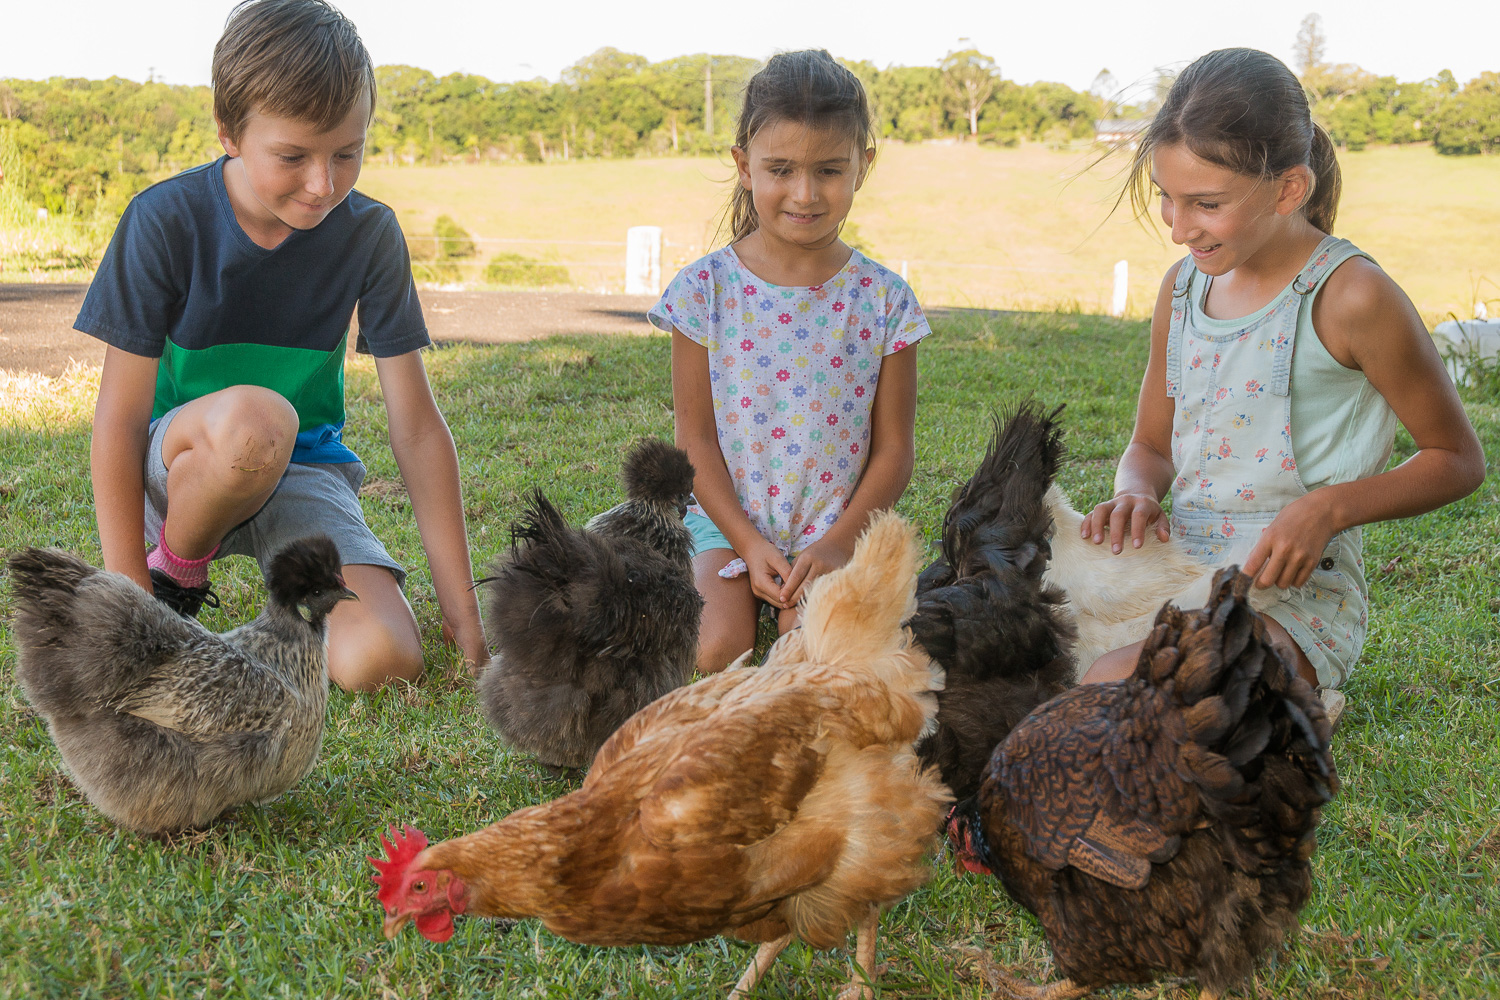 Visit My Farm Australia - Byron Bay Farm Stay, Byron Bay NSW